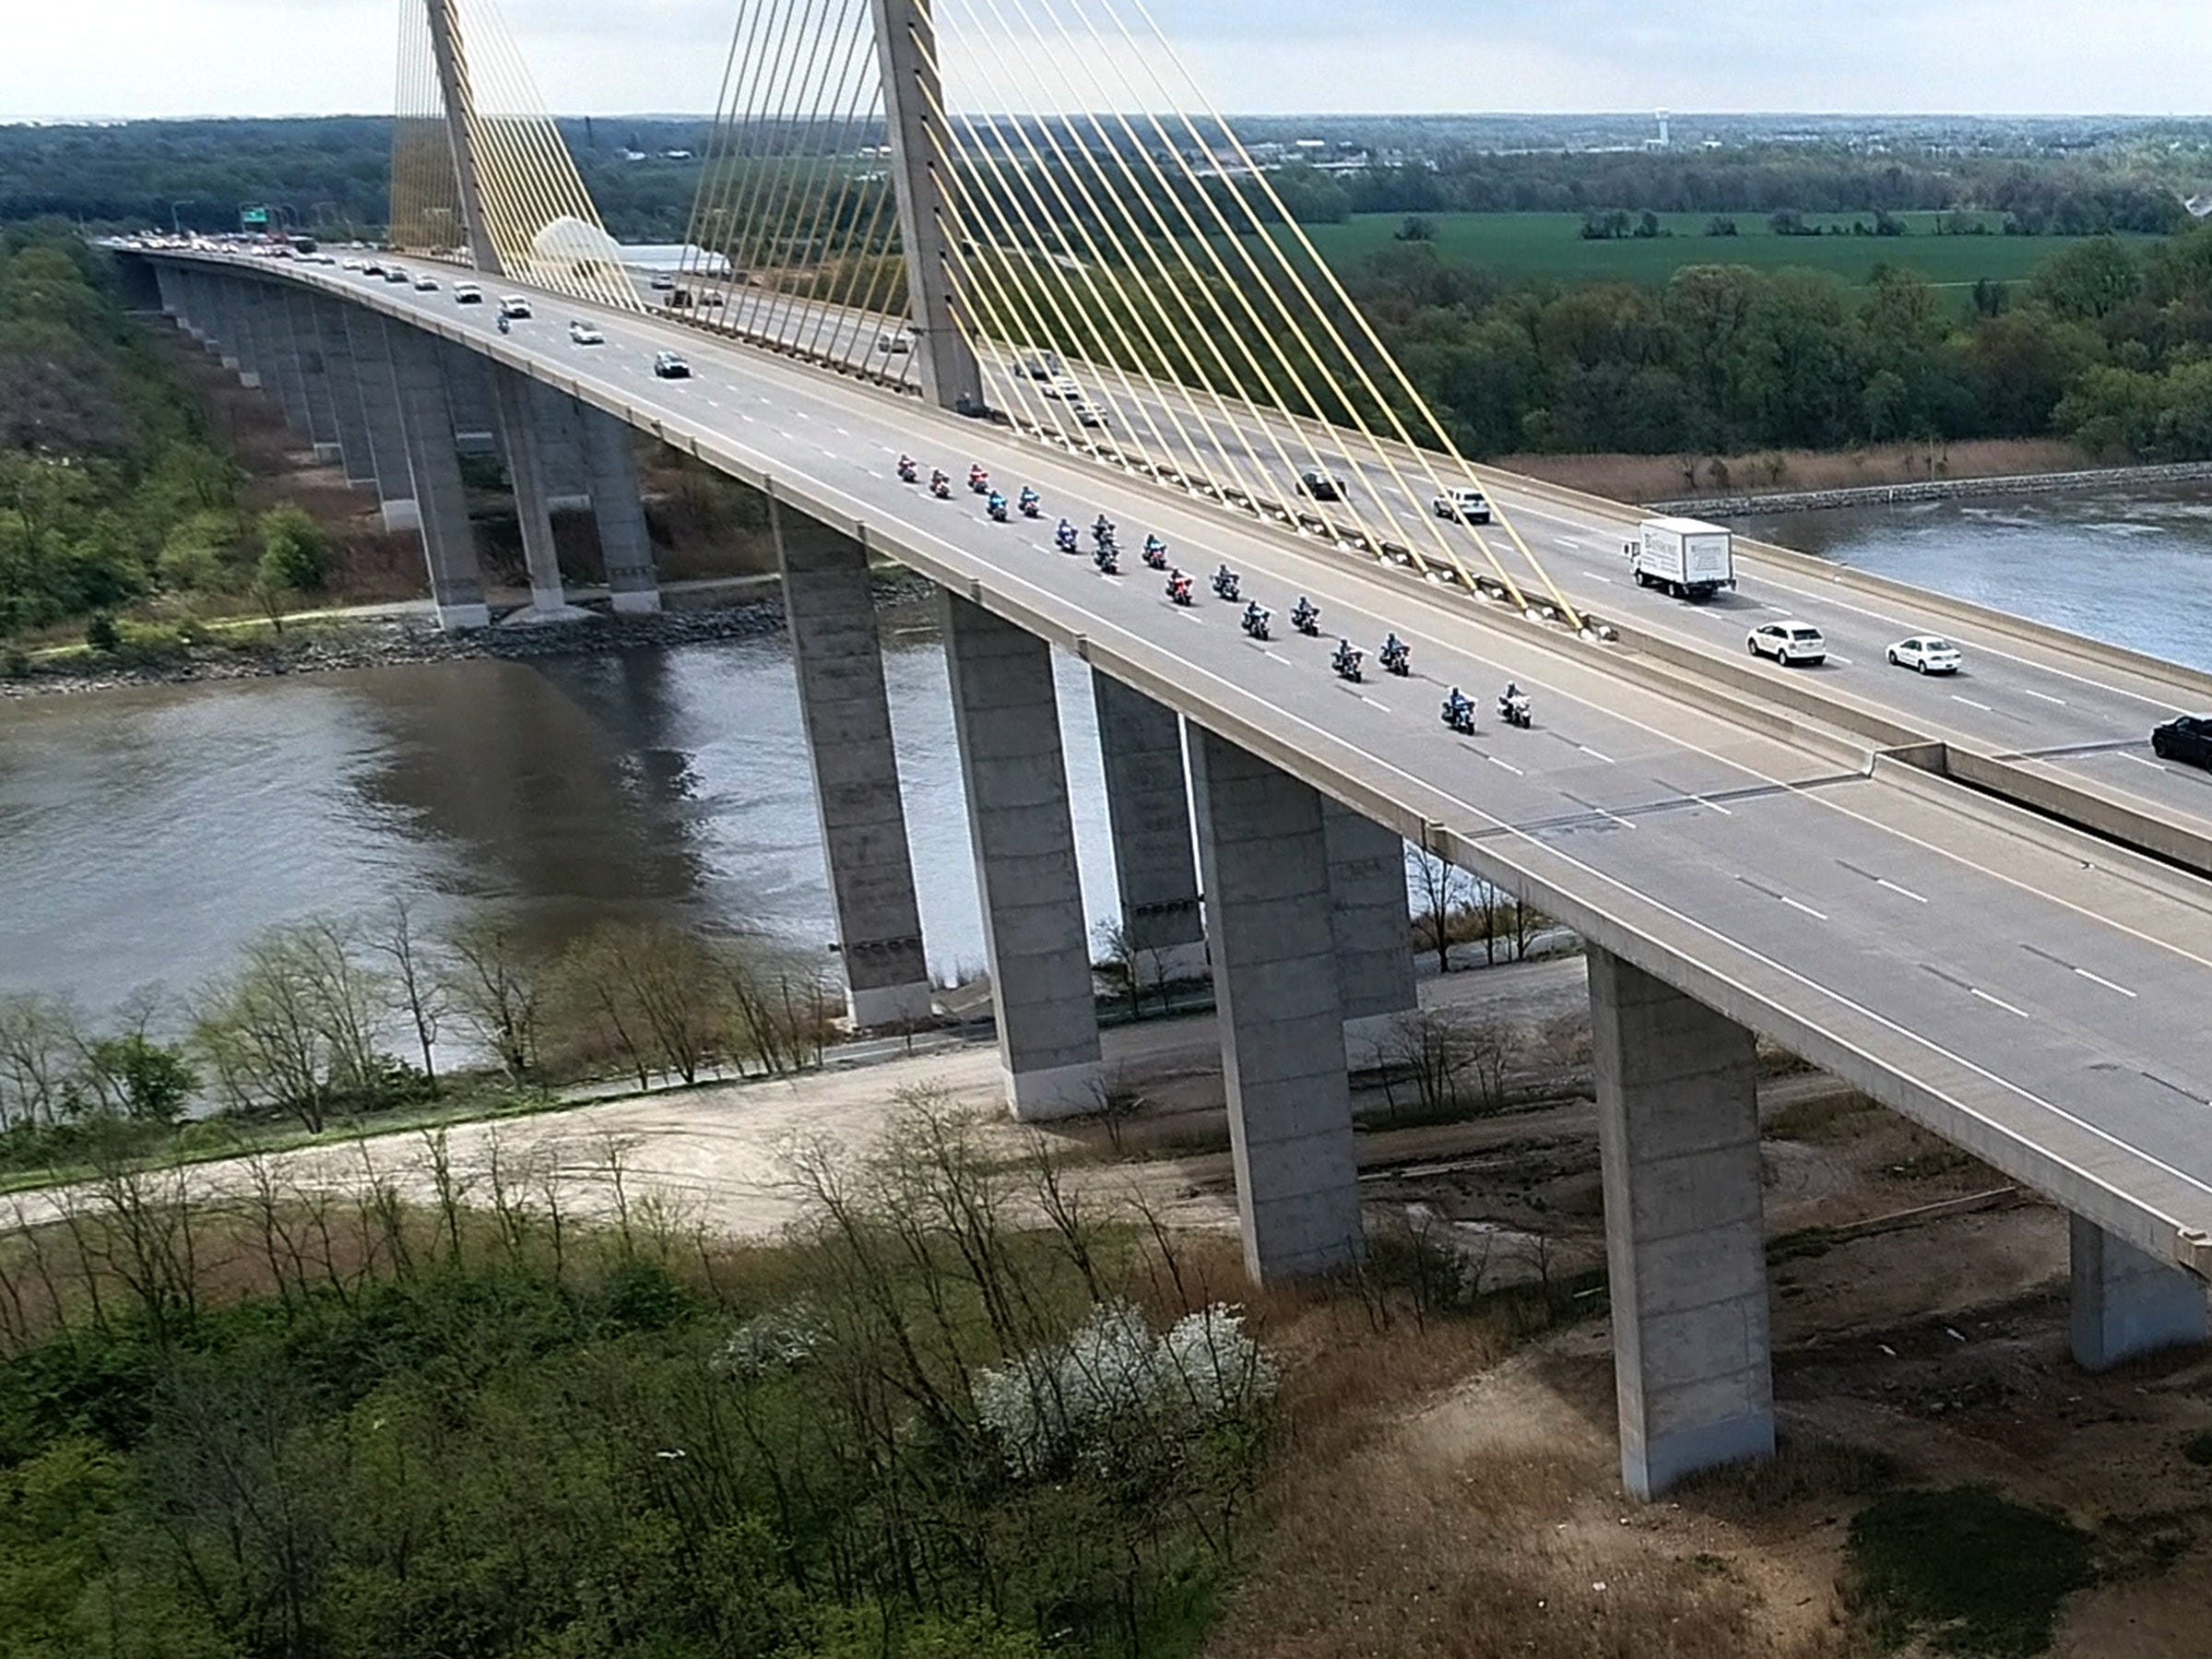 The funeral procession for Marine Staff Sergeant Christopher Slutman heads north along Rt. 1 over The Senator William B. Roth Jr. Bridge in St. Georges, DE, Monday, April 22, 2019.